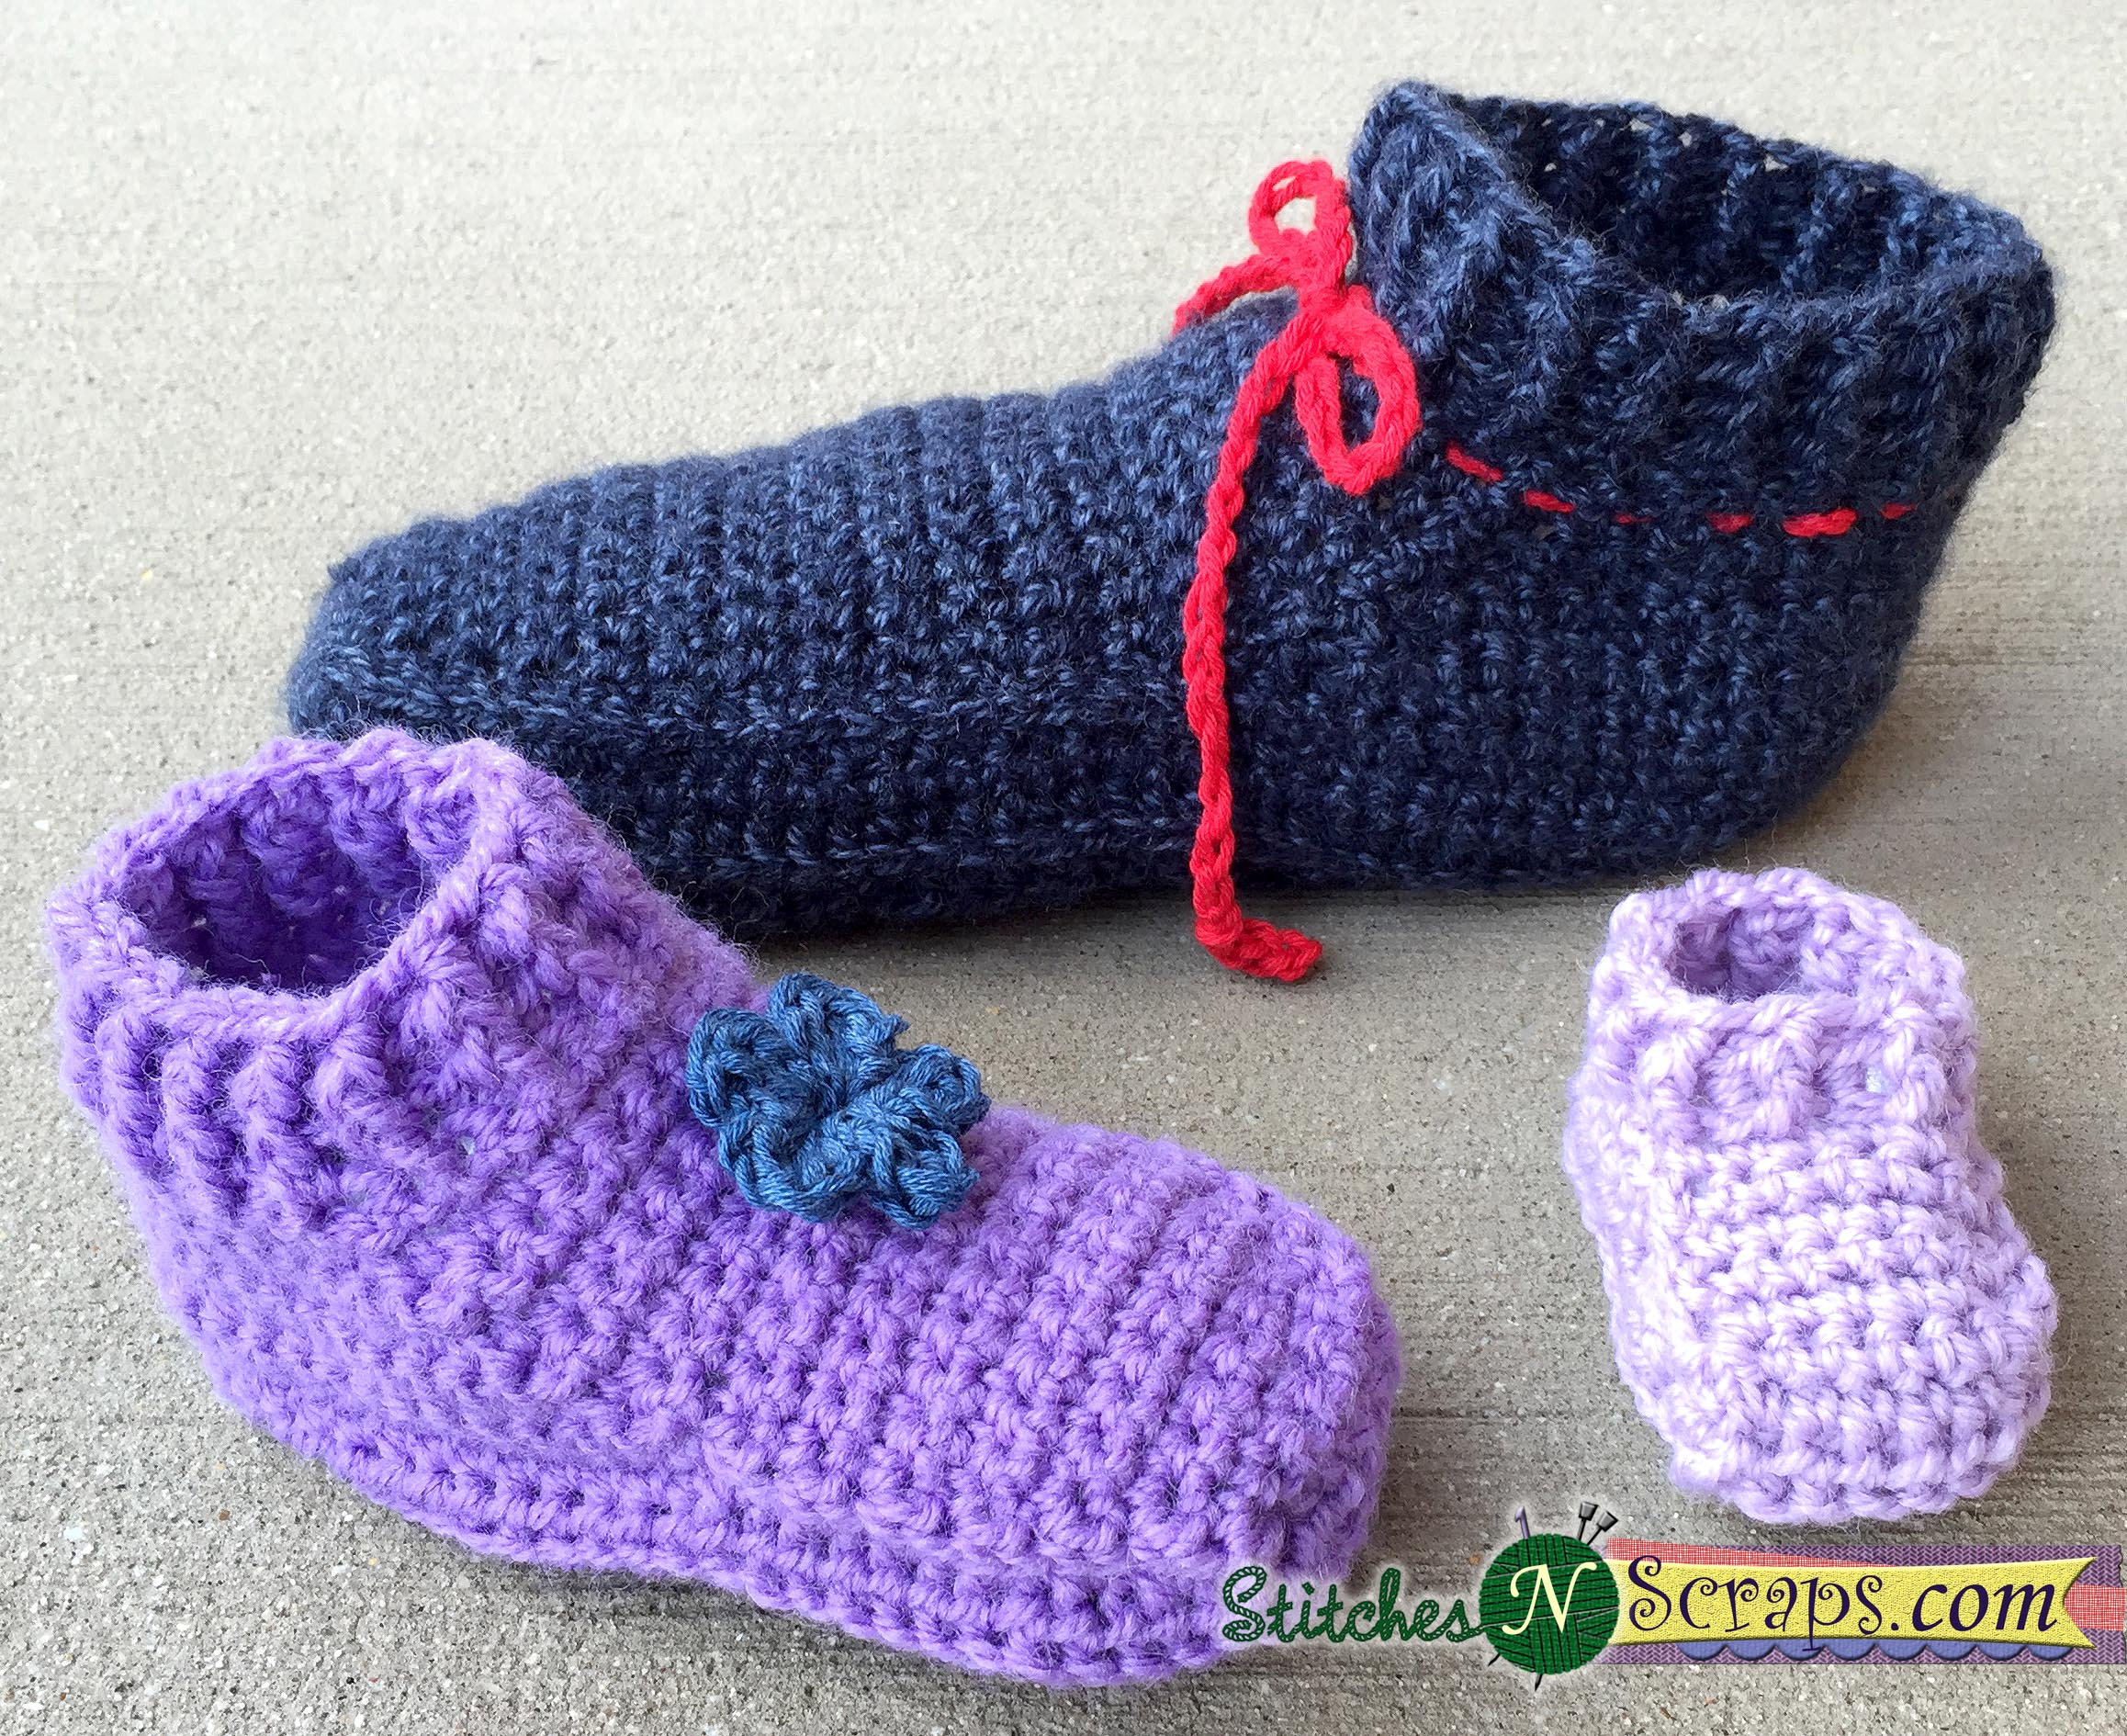 Free Pattern - Non-stop slippers- Adult sizes - Stitches n Scraps